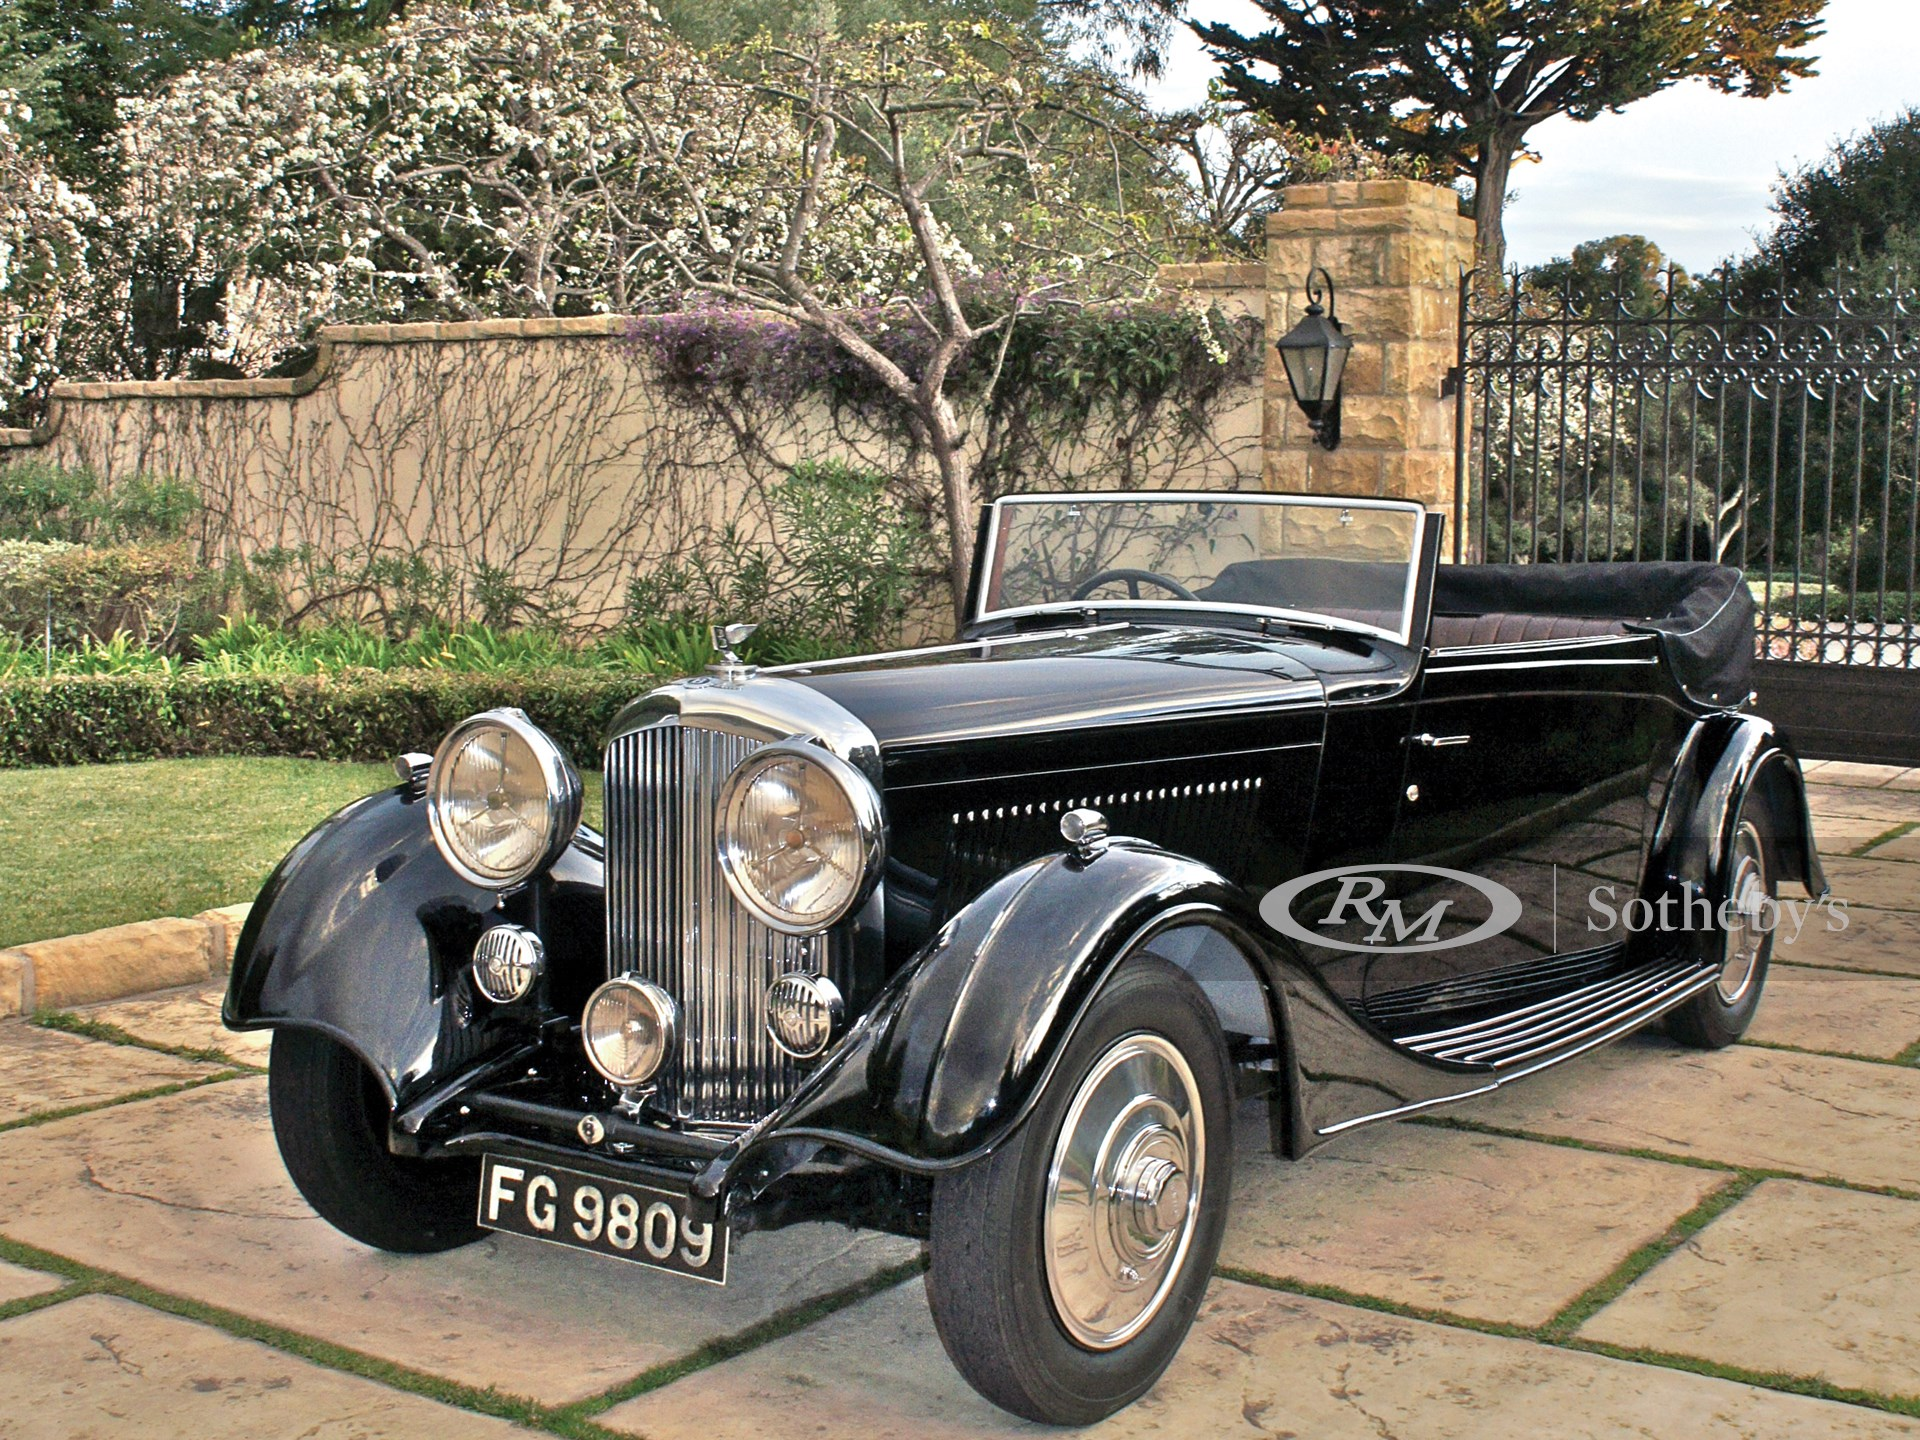 1934 Bentley 3½-Litre Three-Position Drophead Coupe by Thrupp and Maberly